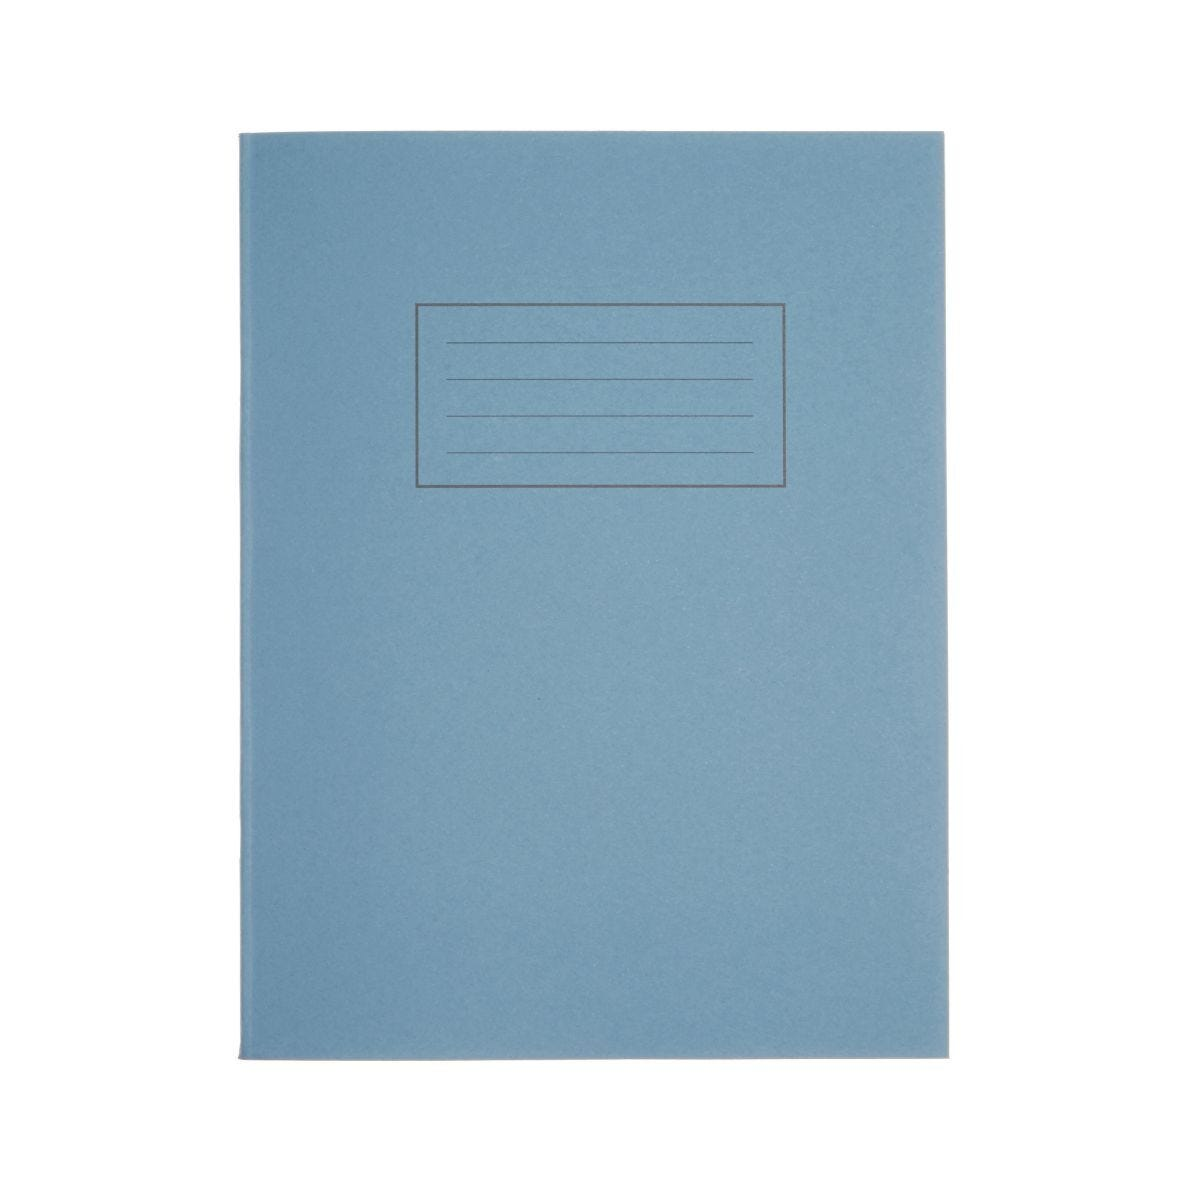 Silvine Exercise Book 9 Inch x 7 Inch 80 Page Ruled 75gsm Blue